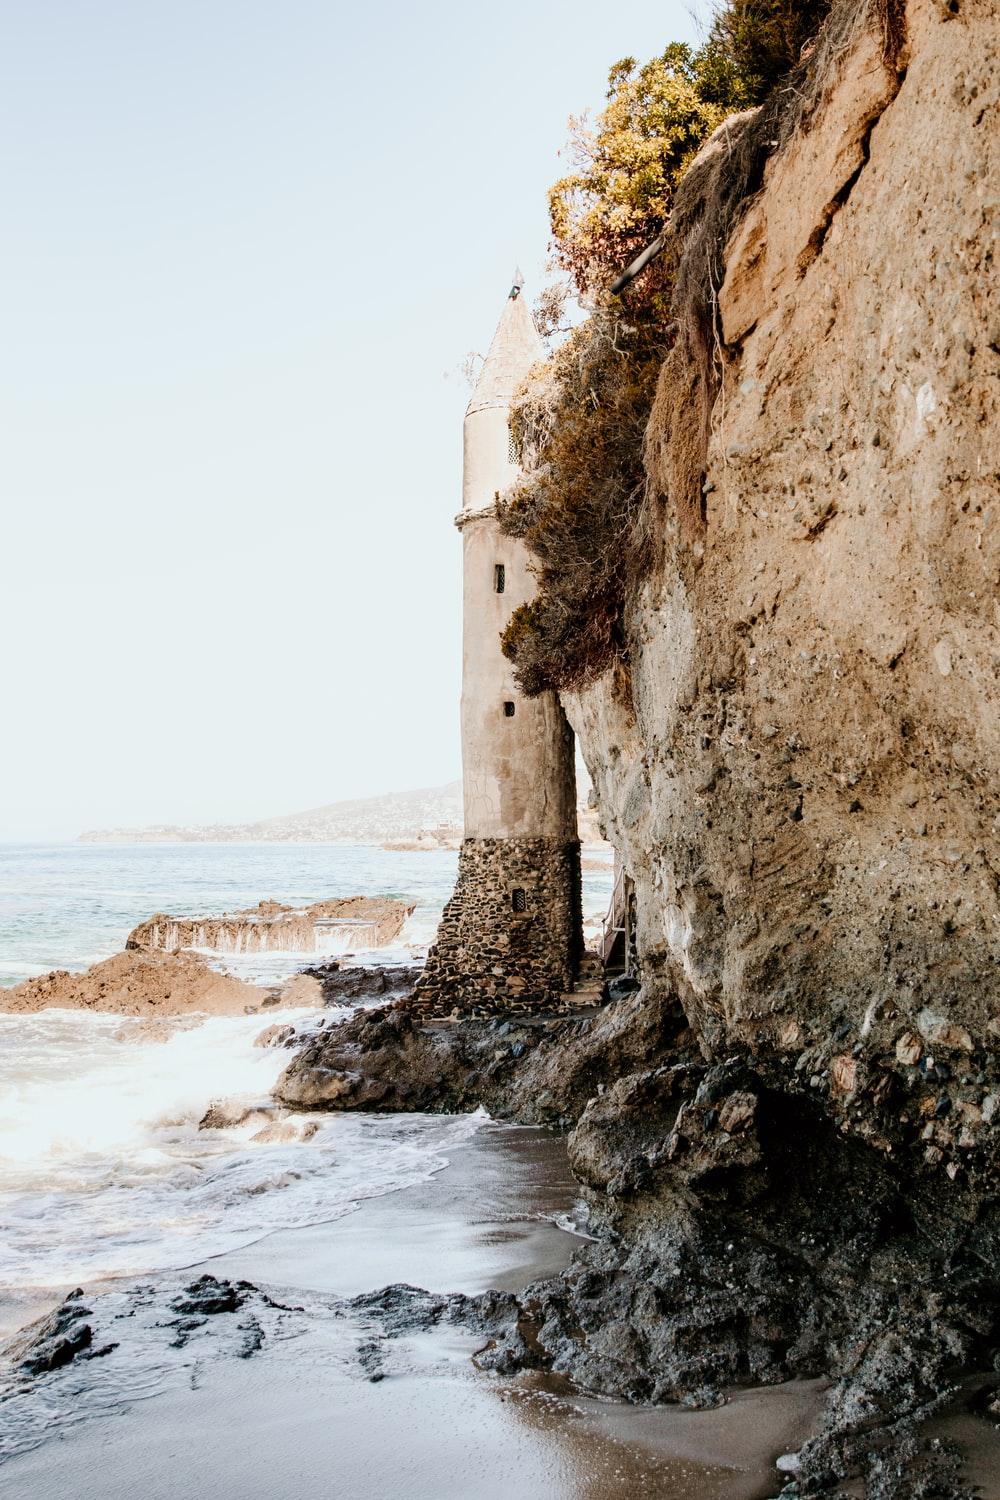 brown rock formation on sea shore during daytime